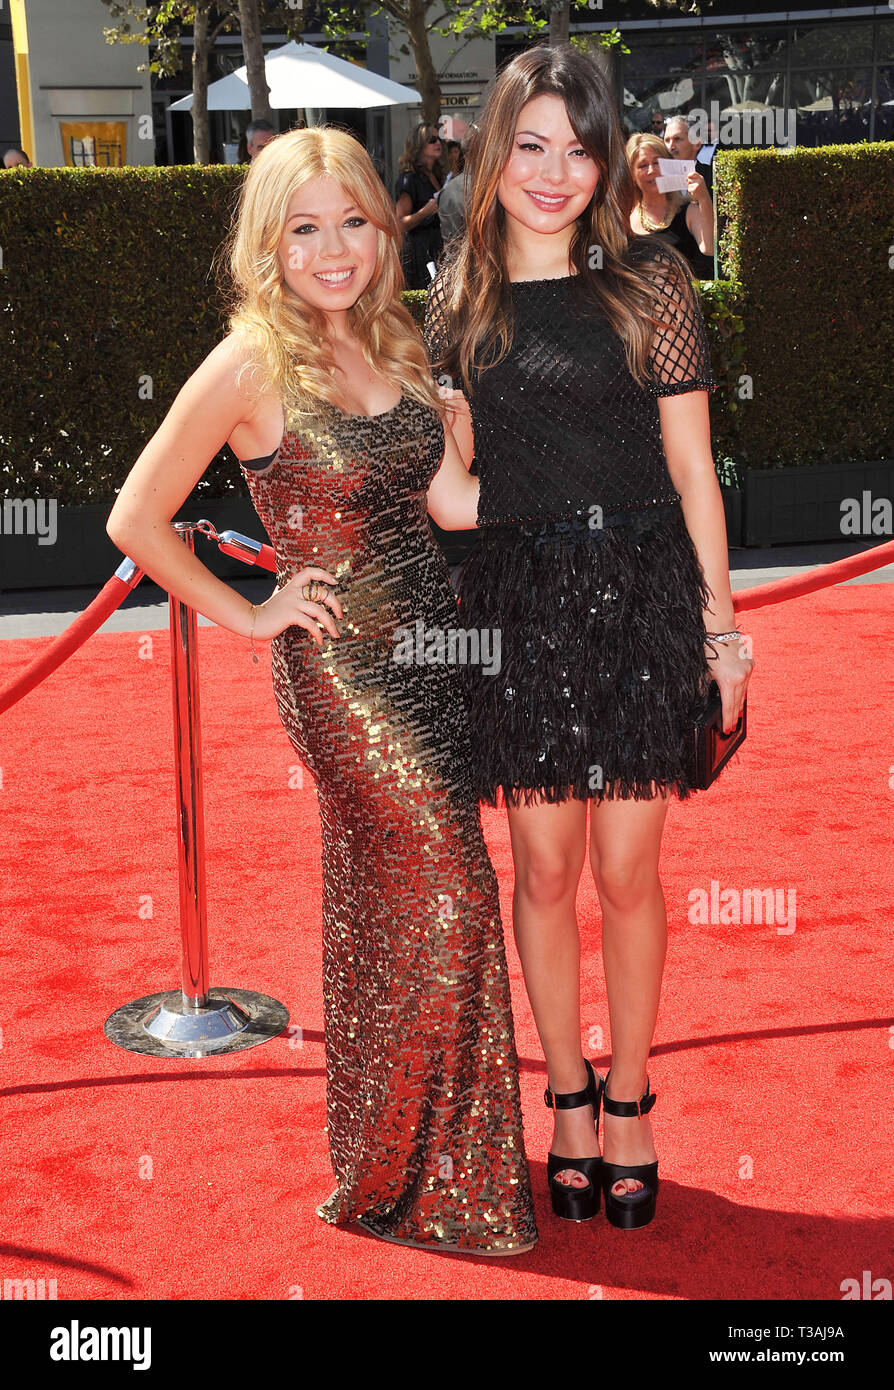 Jennette McCurdy  and Miranda Cosgrove  at 2012 PrimeTime Creative Arts Emmy Awards At the Nokia Theatre In Los Angeles.Jennette McCurdy  and Miranda Cosgrove   Event in Hollywood Life - California, Red Carpet Event, USA, Film Industry, Celebrities, Photography, Bestof, Arts Culture and Entertainment, Topix Celebrities fashion, Best of, Hollywood Life, Event in Hollywood Life - California, Red Carpet and backstage, movie celebrities, TV celebrities, Music celebrities, Topix, actors from the same movie, cast and co star together.  inquiry tsuni@Gamma-USA.com, Credit Tsuni / USA, 2012 - Group, T - Stock Image